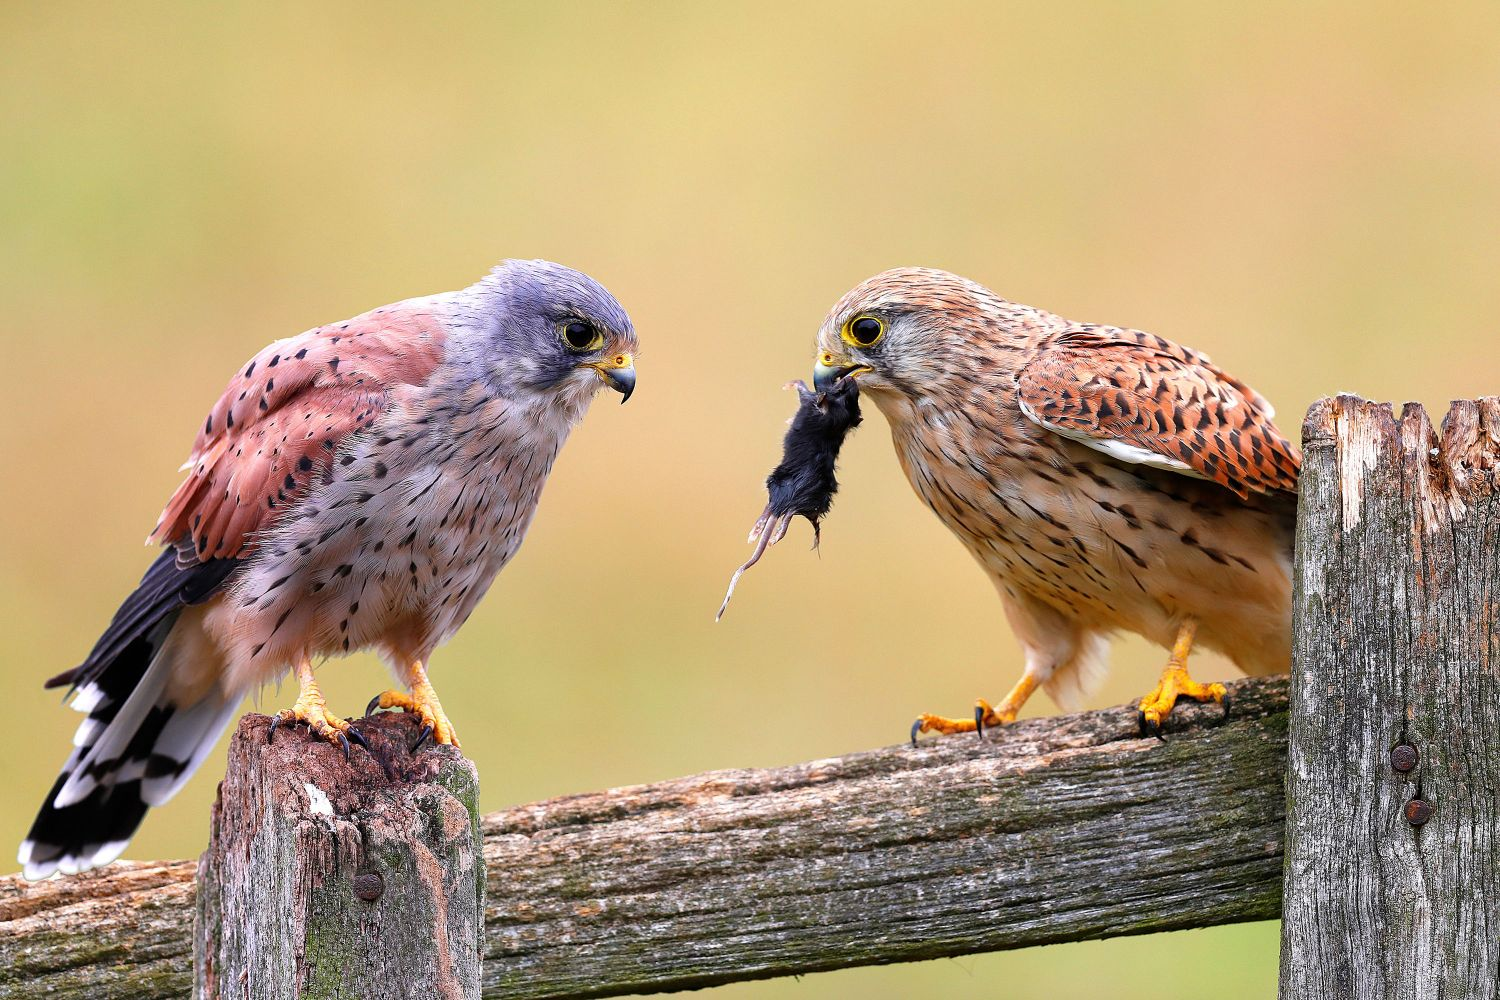 Calm before the storm as two Kestrels check out lunch